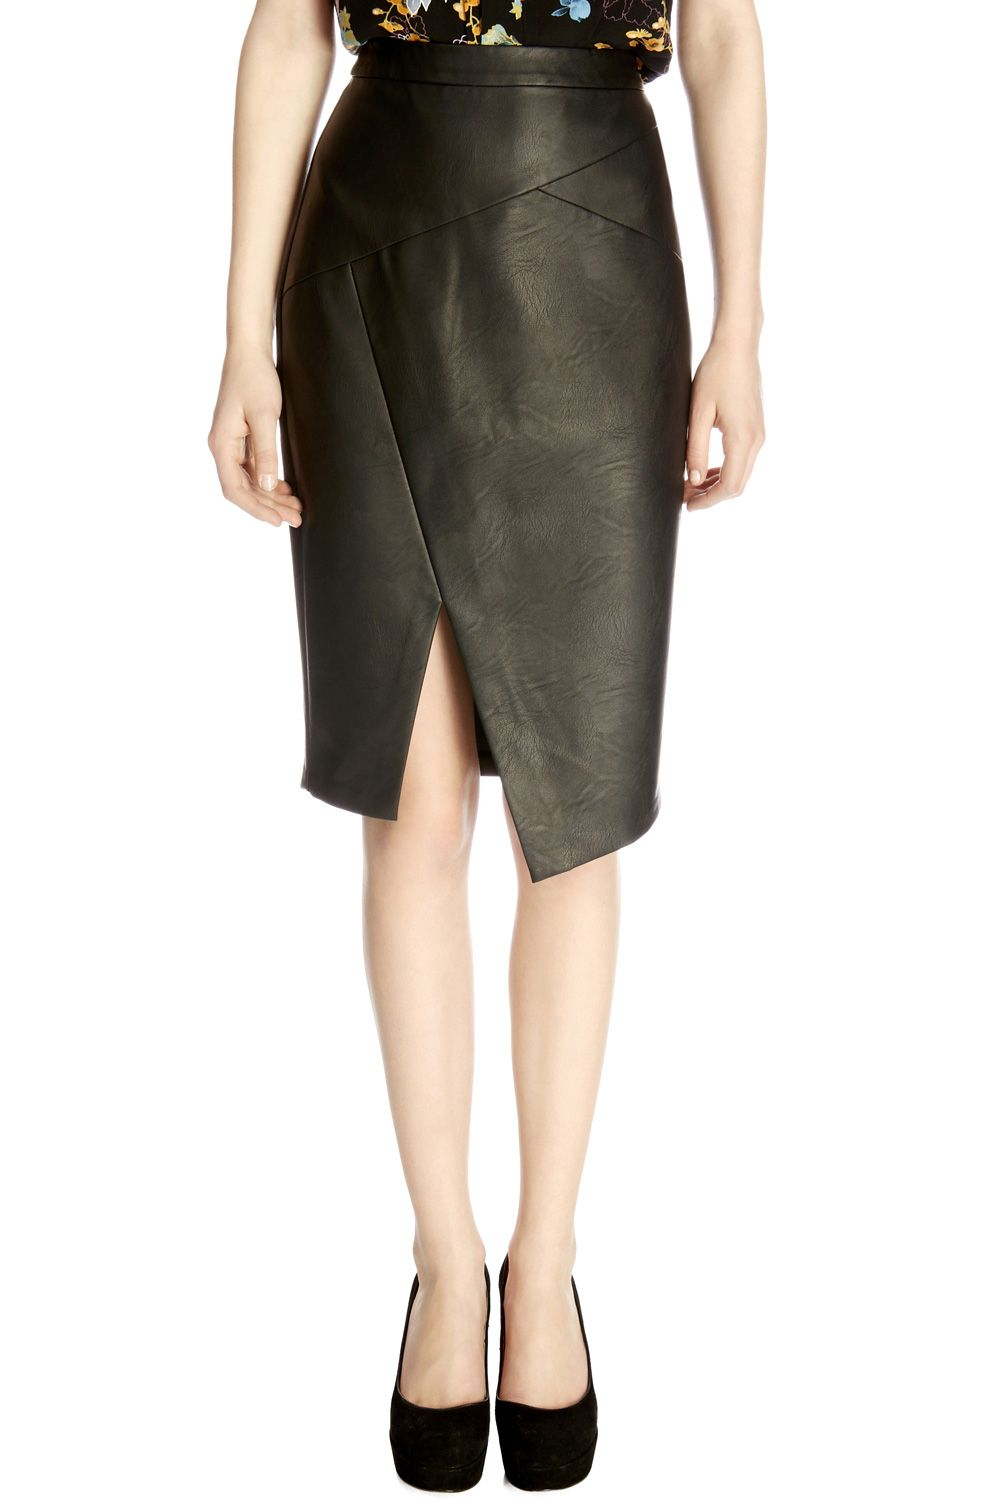 Oasis Faux Leather Wrap Pencil Skirt in Black | Lyst